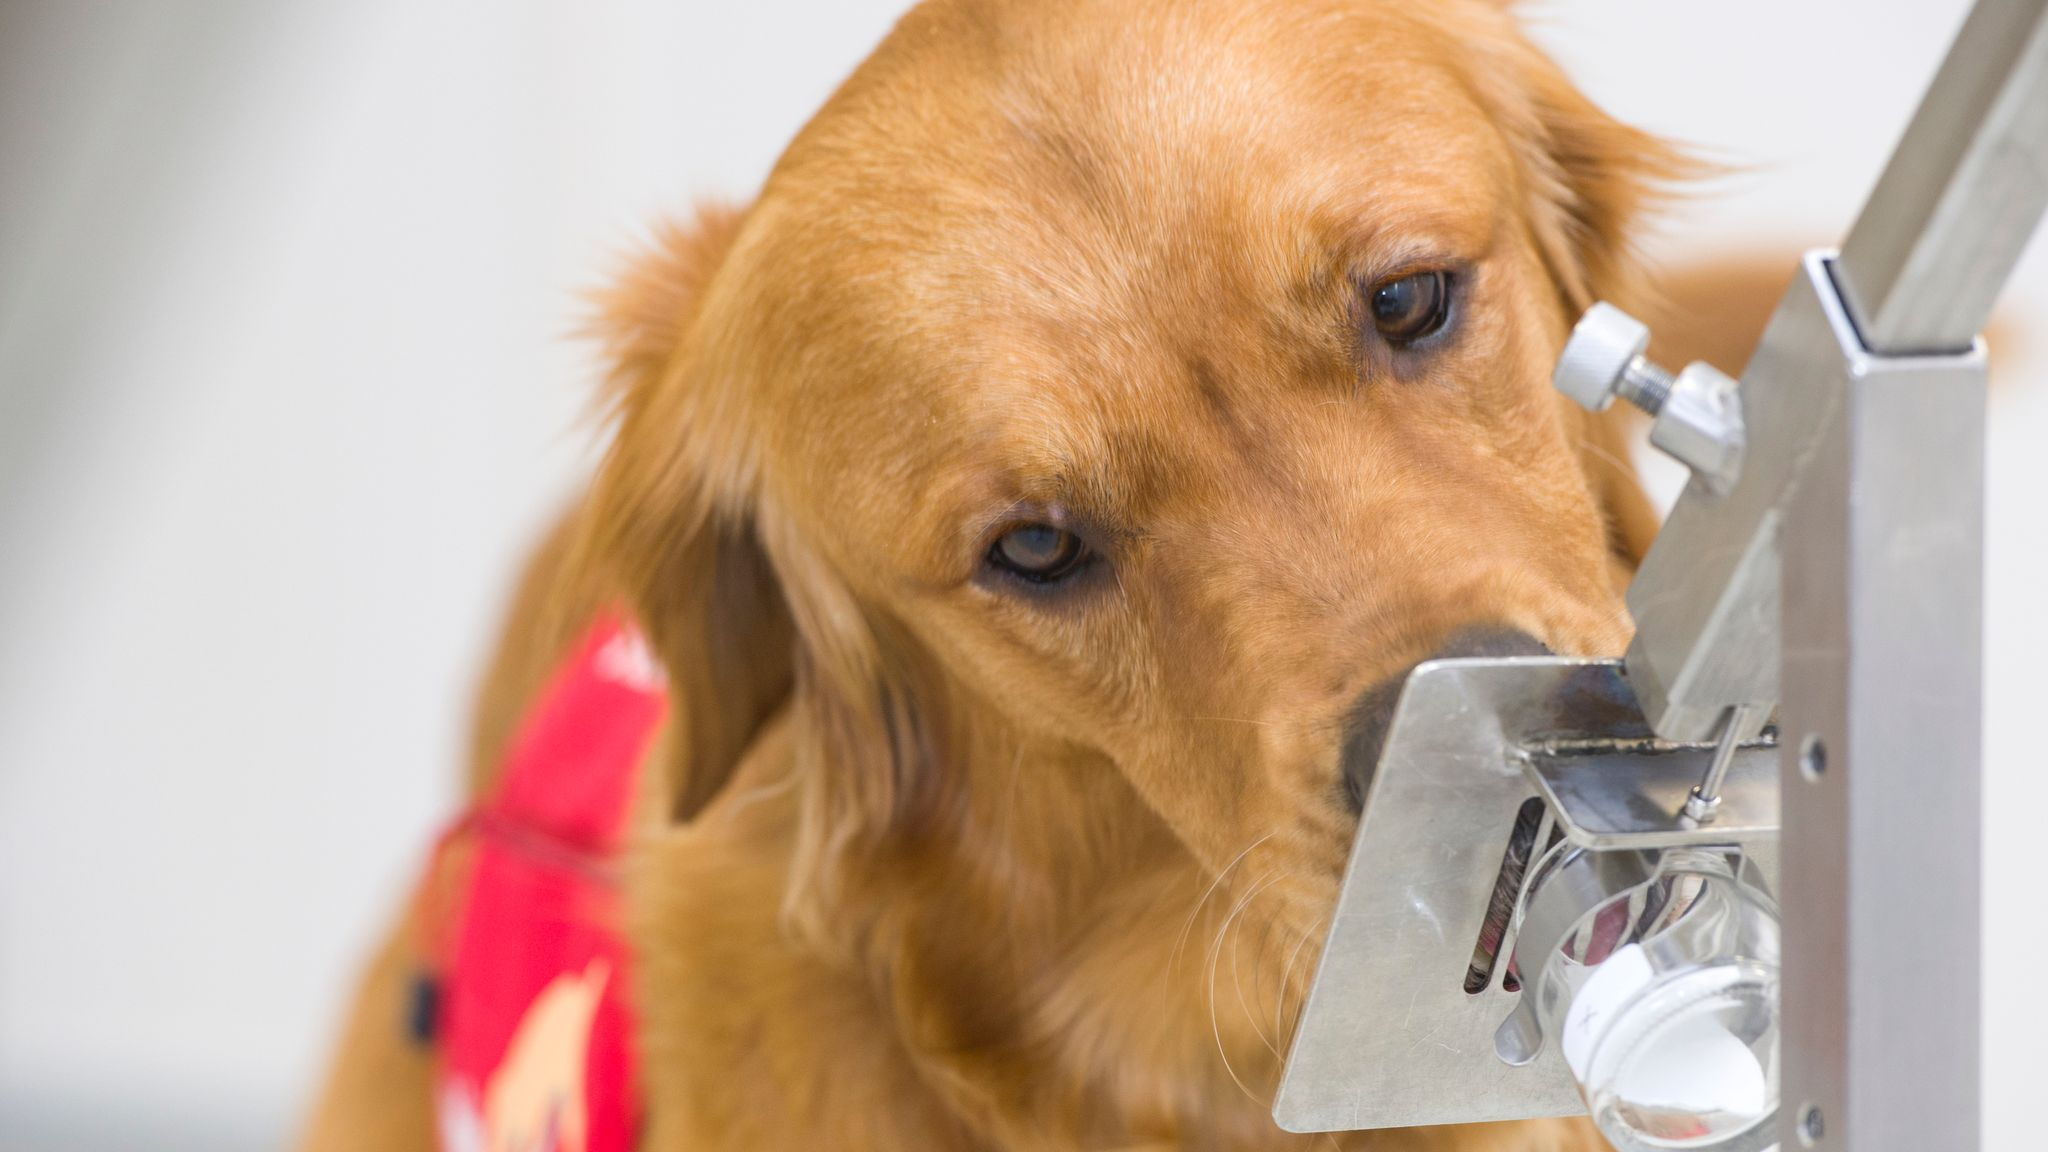 Covid Dogs Could Sniff Out Up To 250 People An Hour For Coronavirus Uk News Sky News